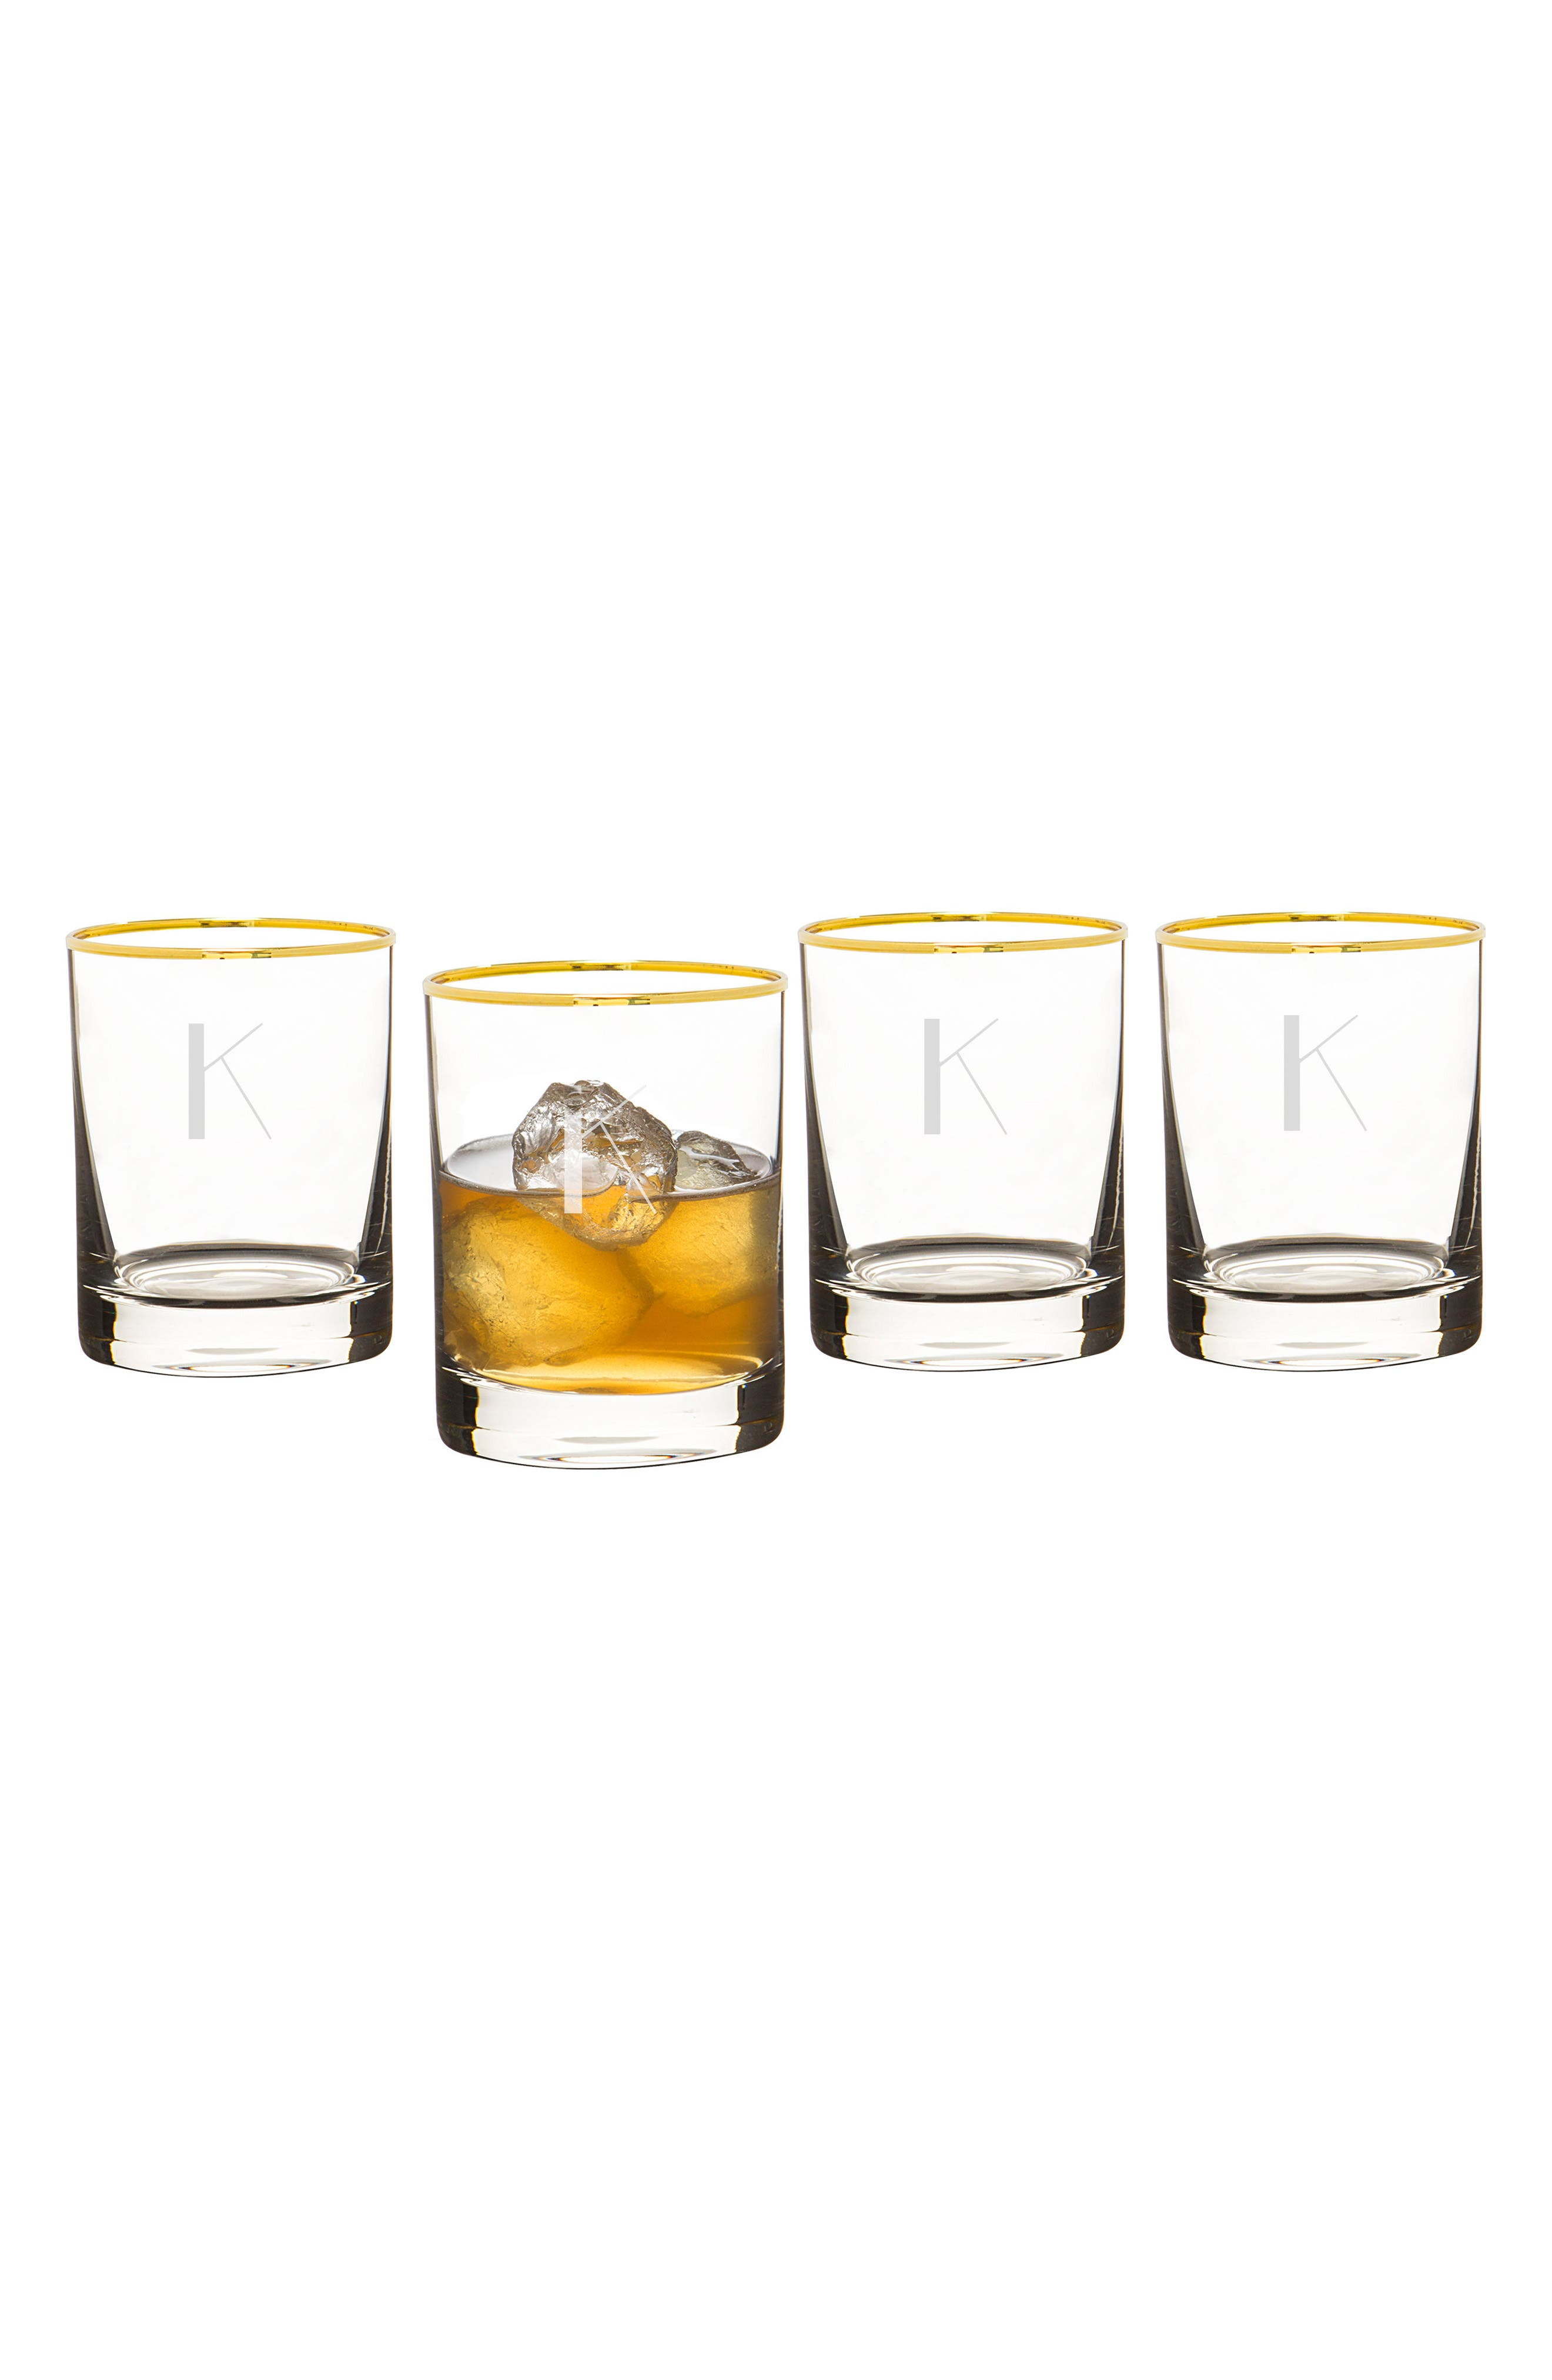 Monogram Set of 4 Double Old Fashioned Glasses,                             Main thumbnail 12, color,